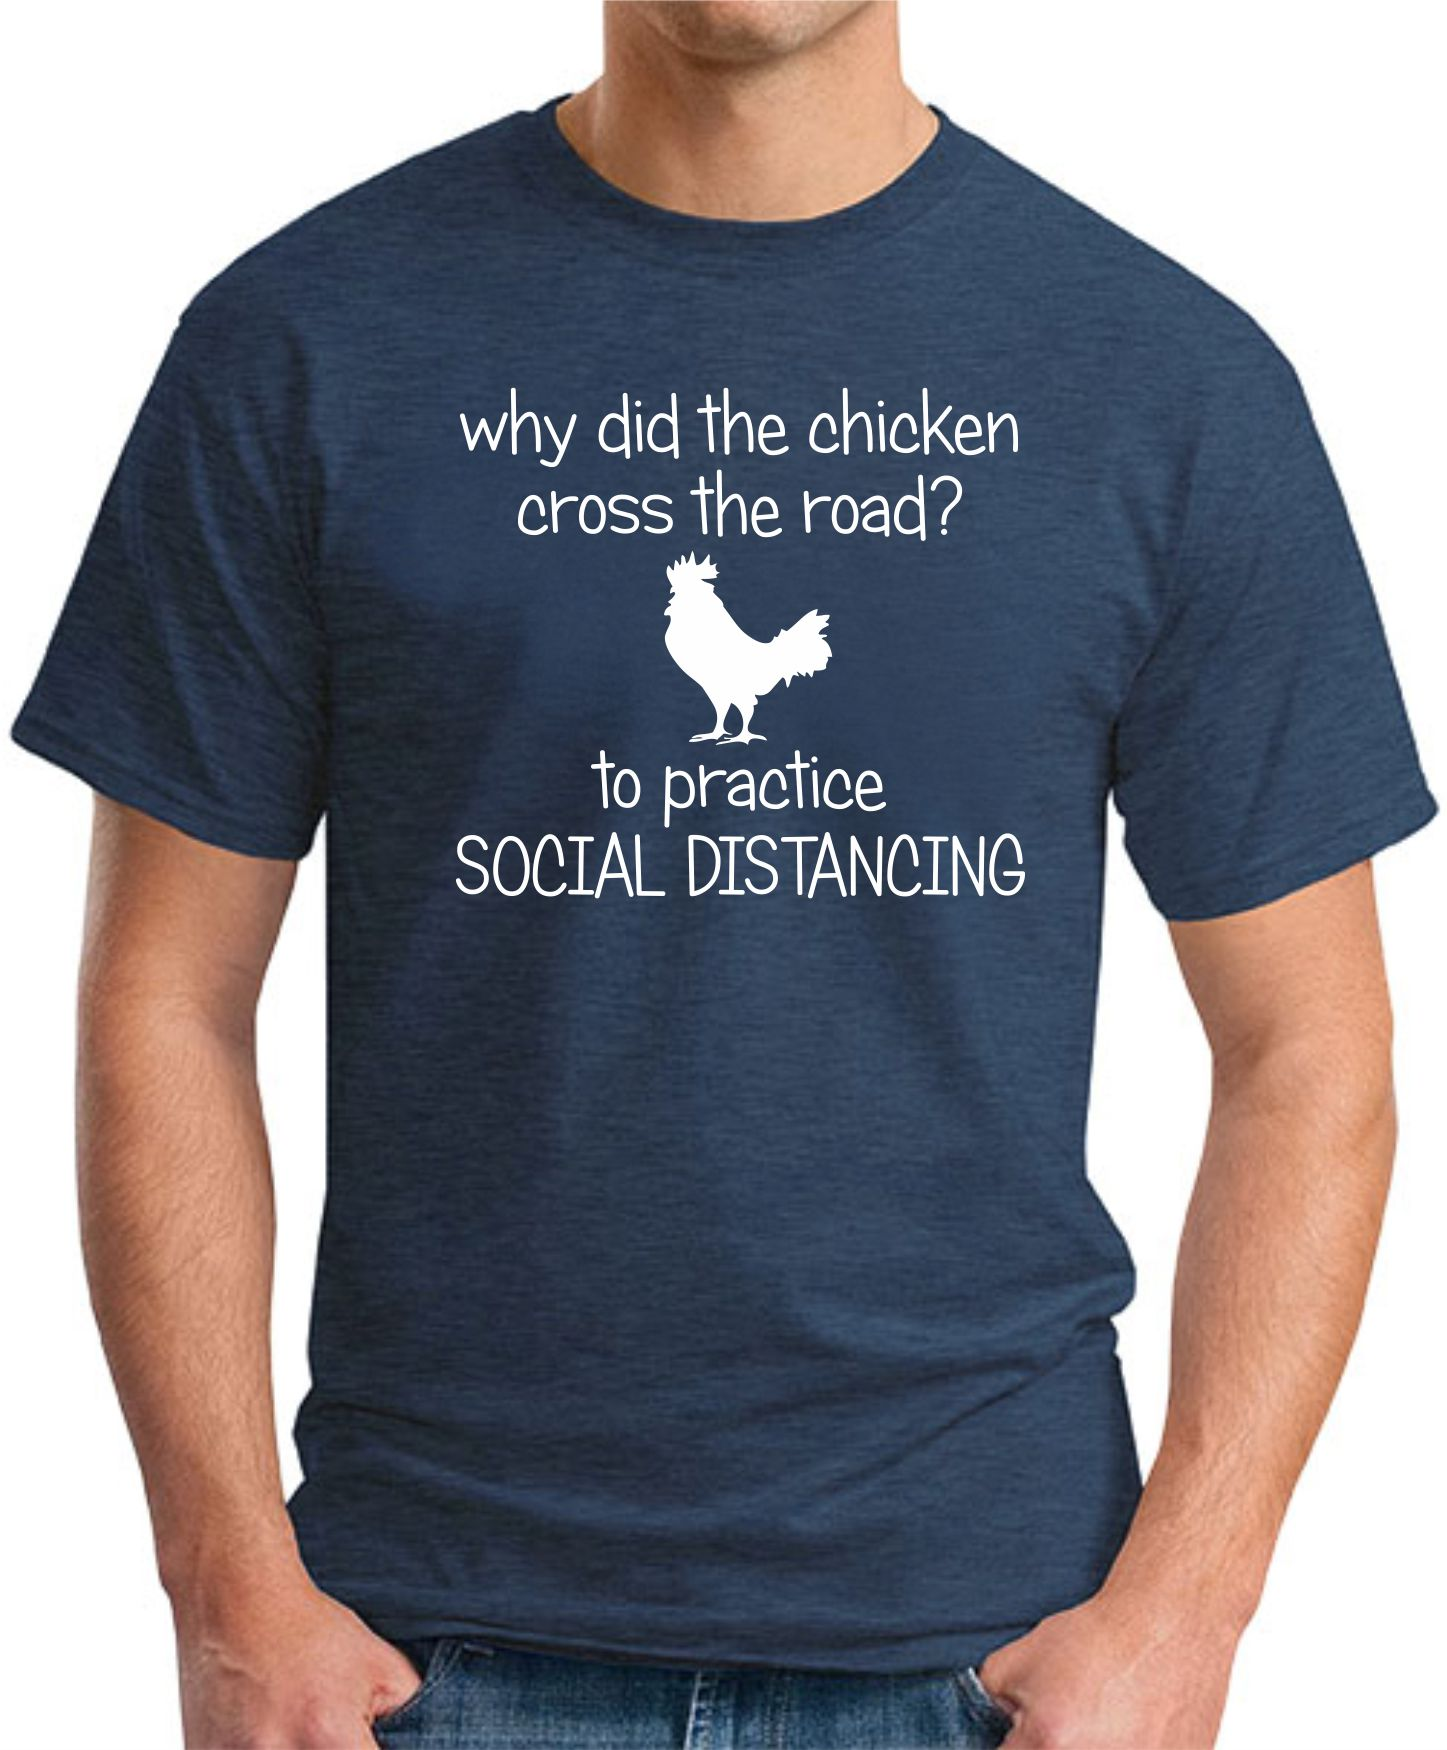 WHY DID THE CHICKEN CROSS THE ROAD NAVY